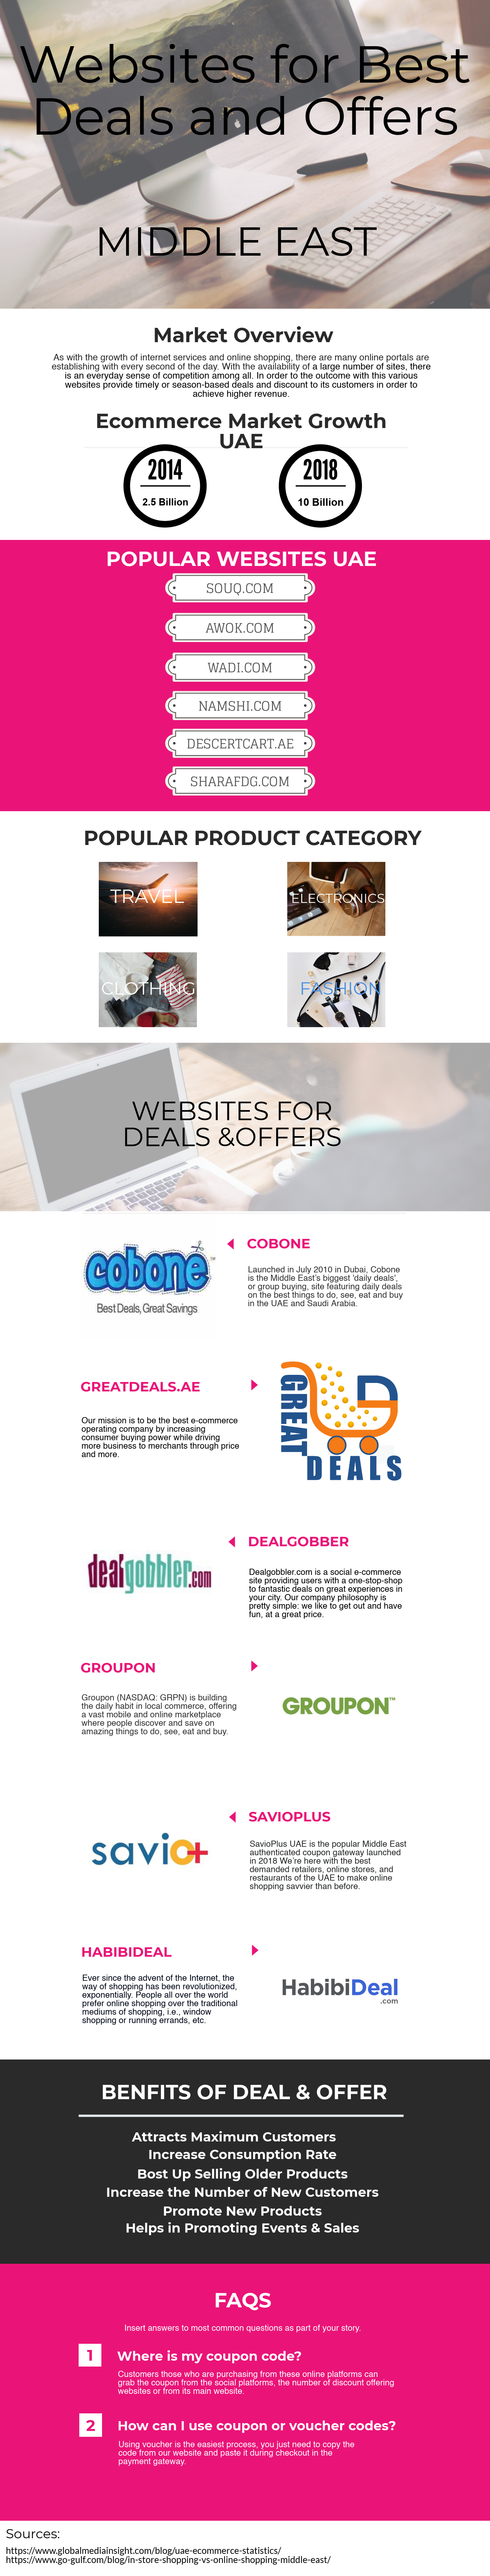 Websites For Best Deals And Offers In The Middle East Discount Codes Coupon Promo Codes Offer